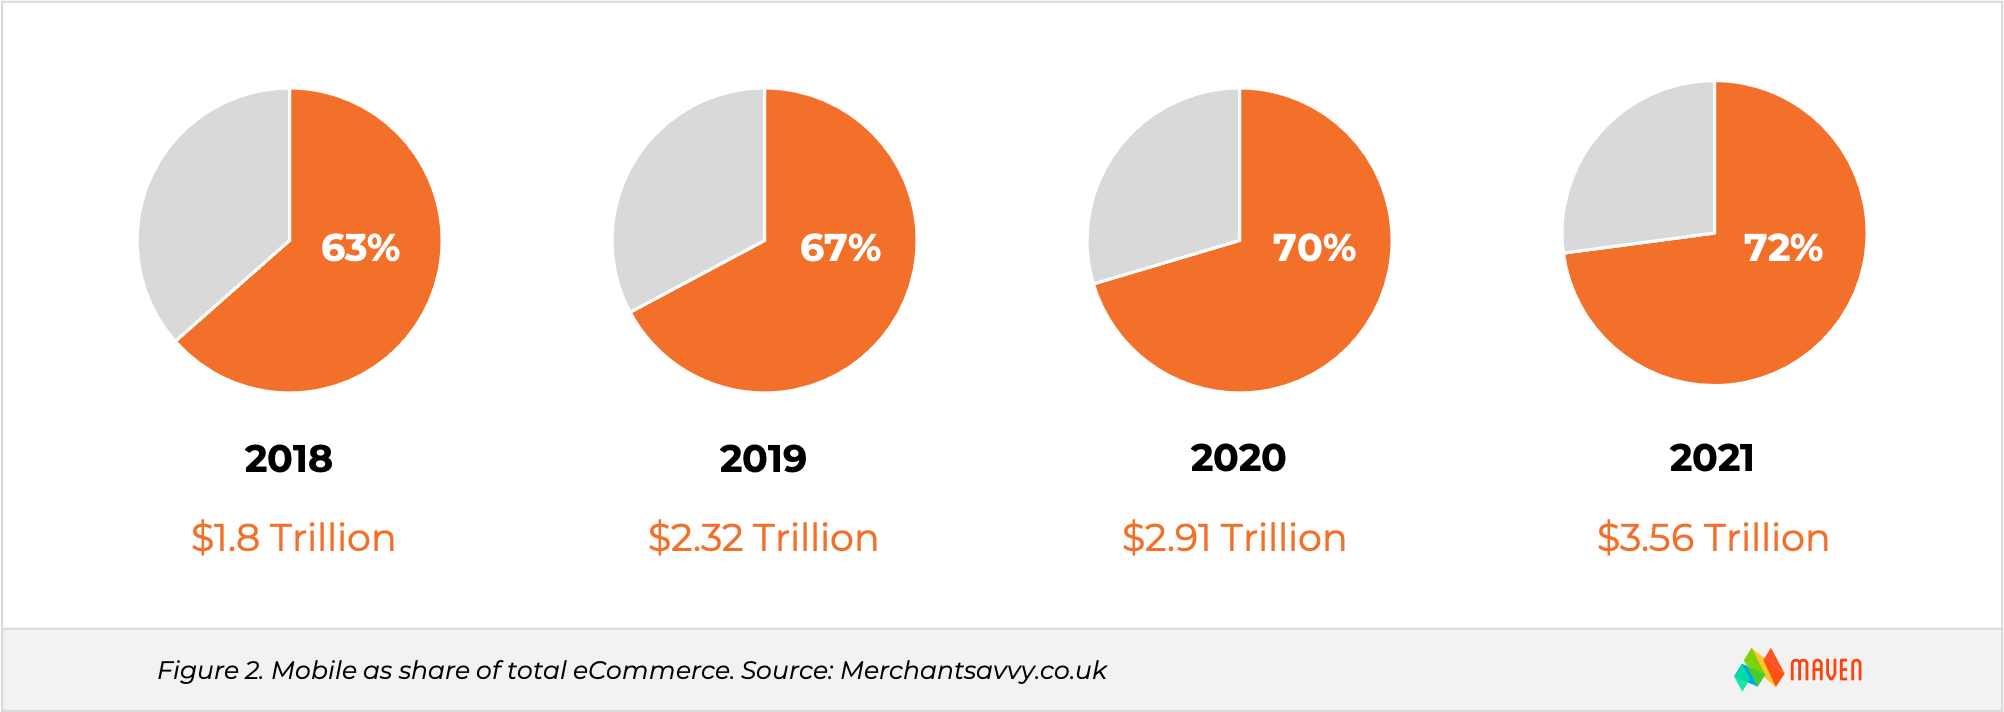 2021 eCommerce Trends - Mobile Sales Growth